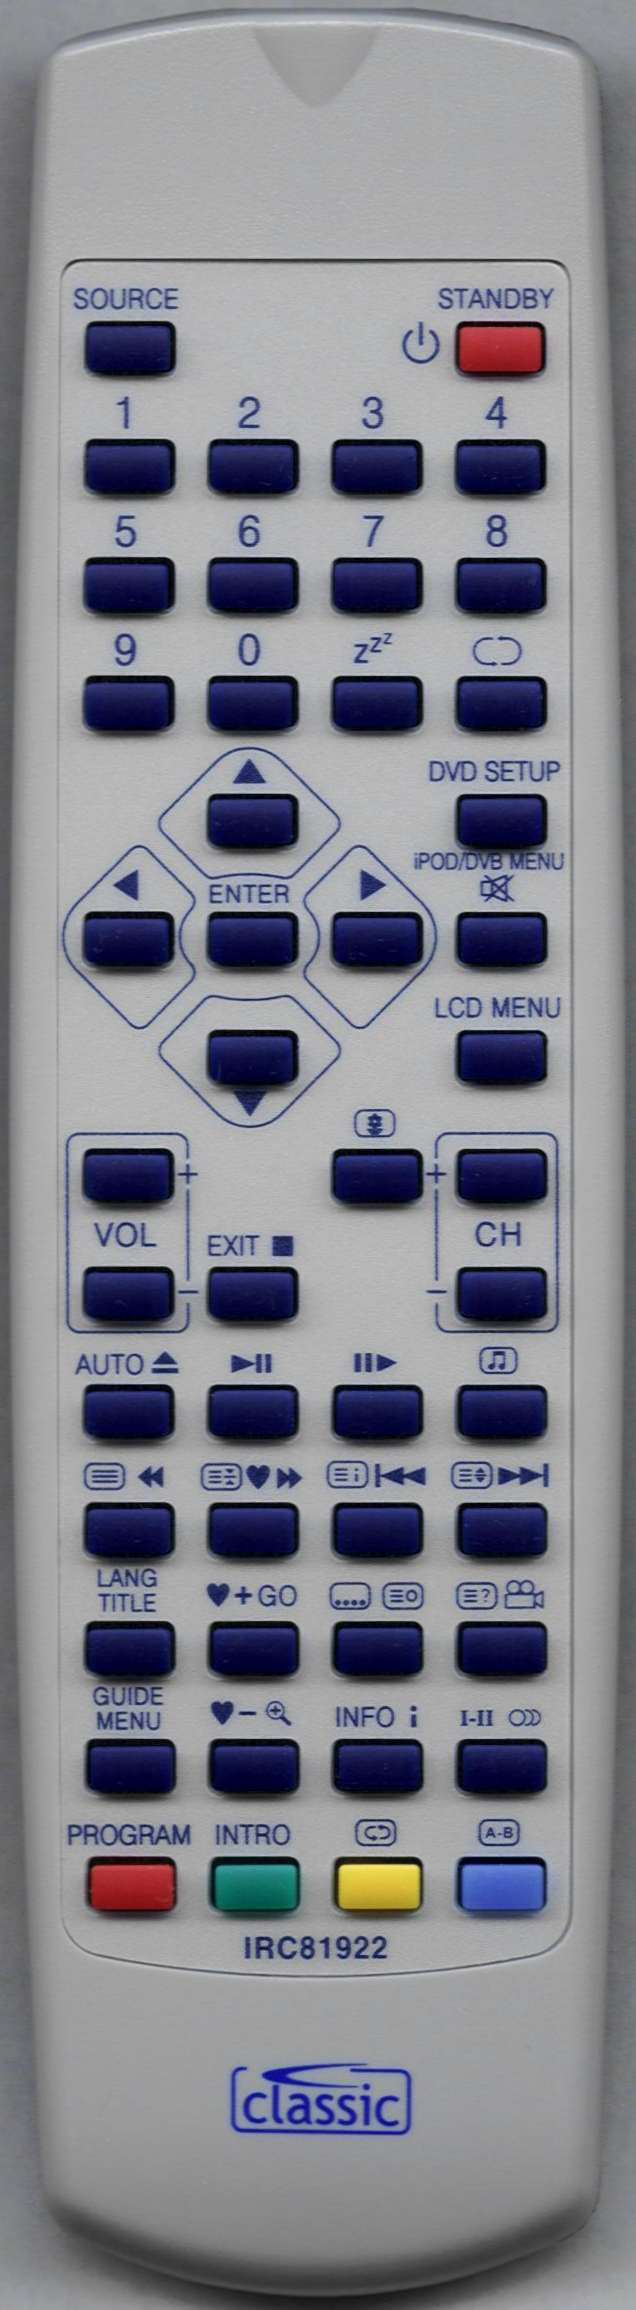 PROLINE LVD1986WDW Replacement Remote Control